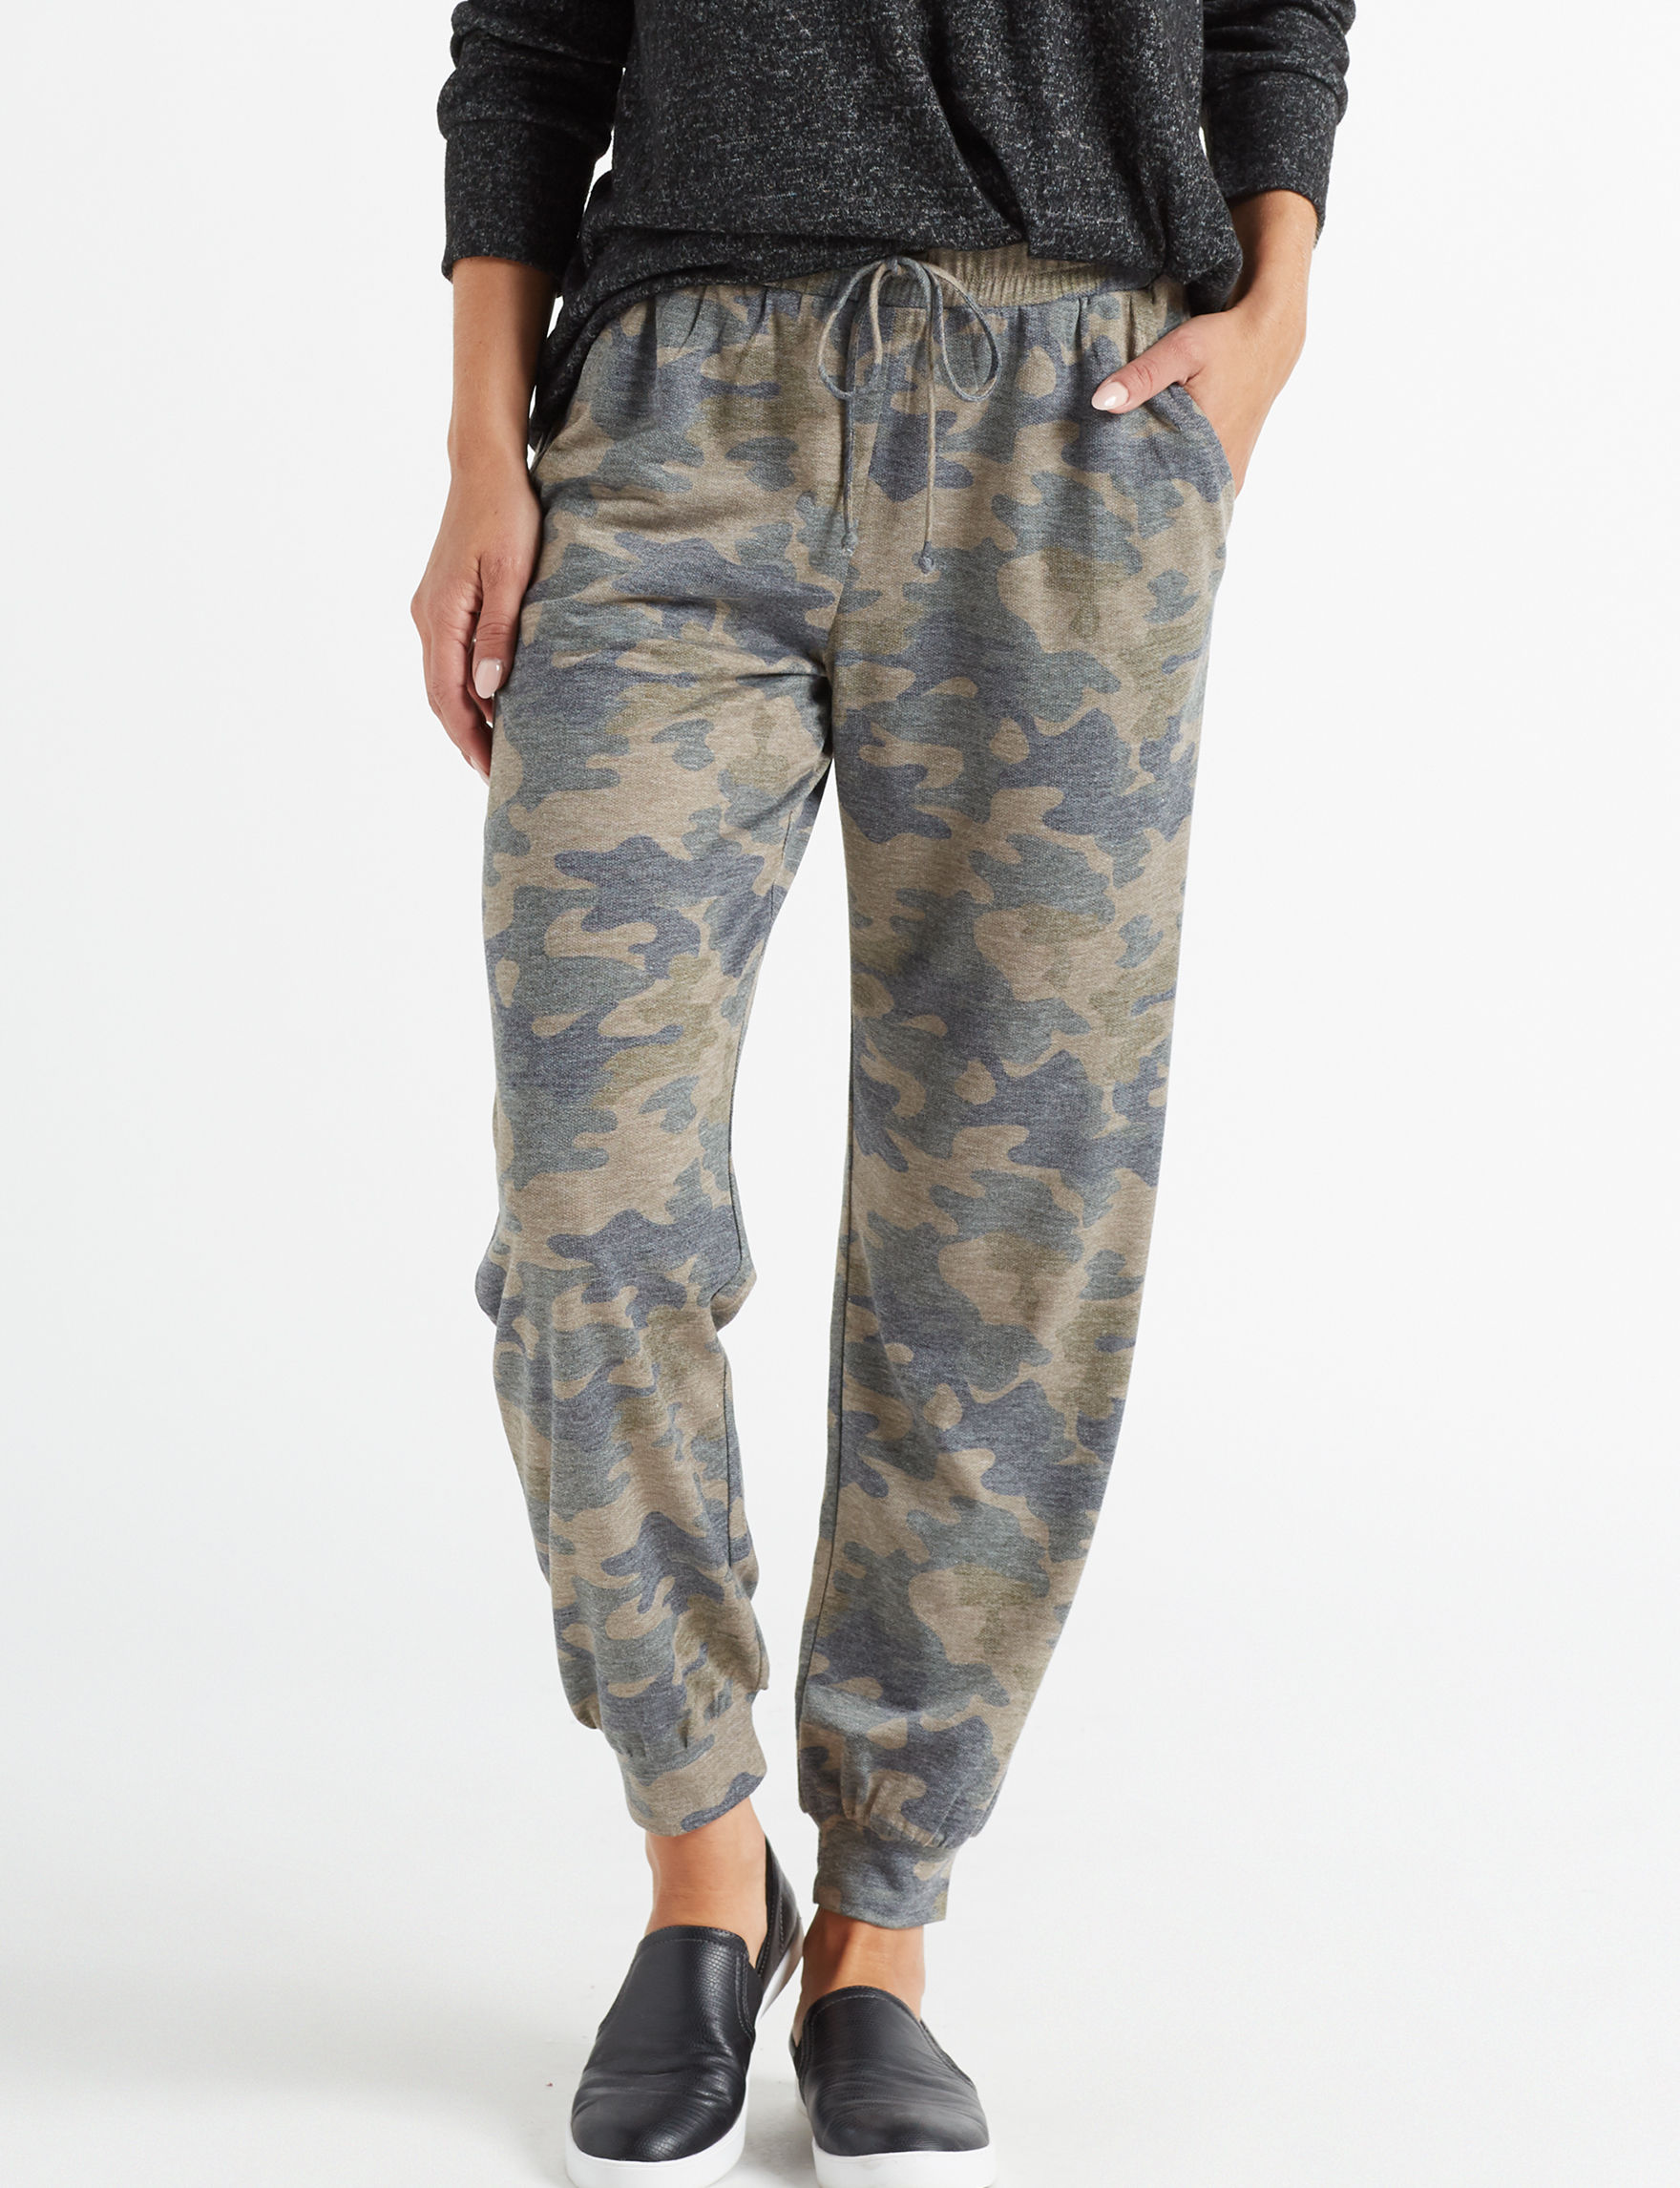 Signature Studio Camo Everyday & Casual Soft Pants